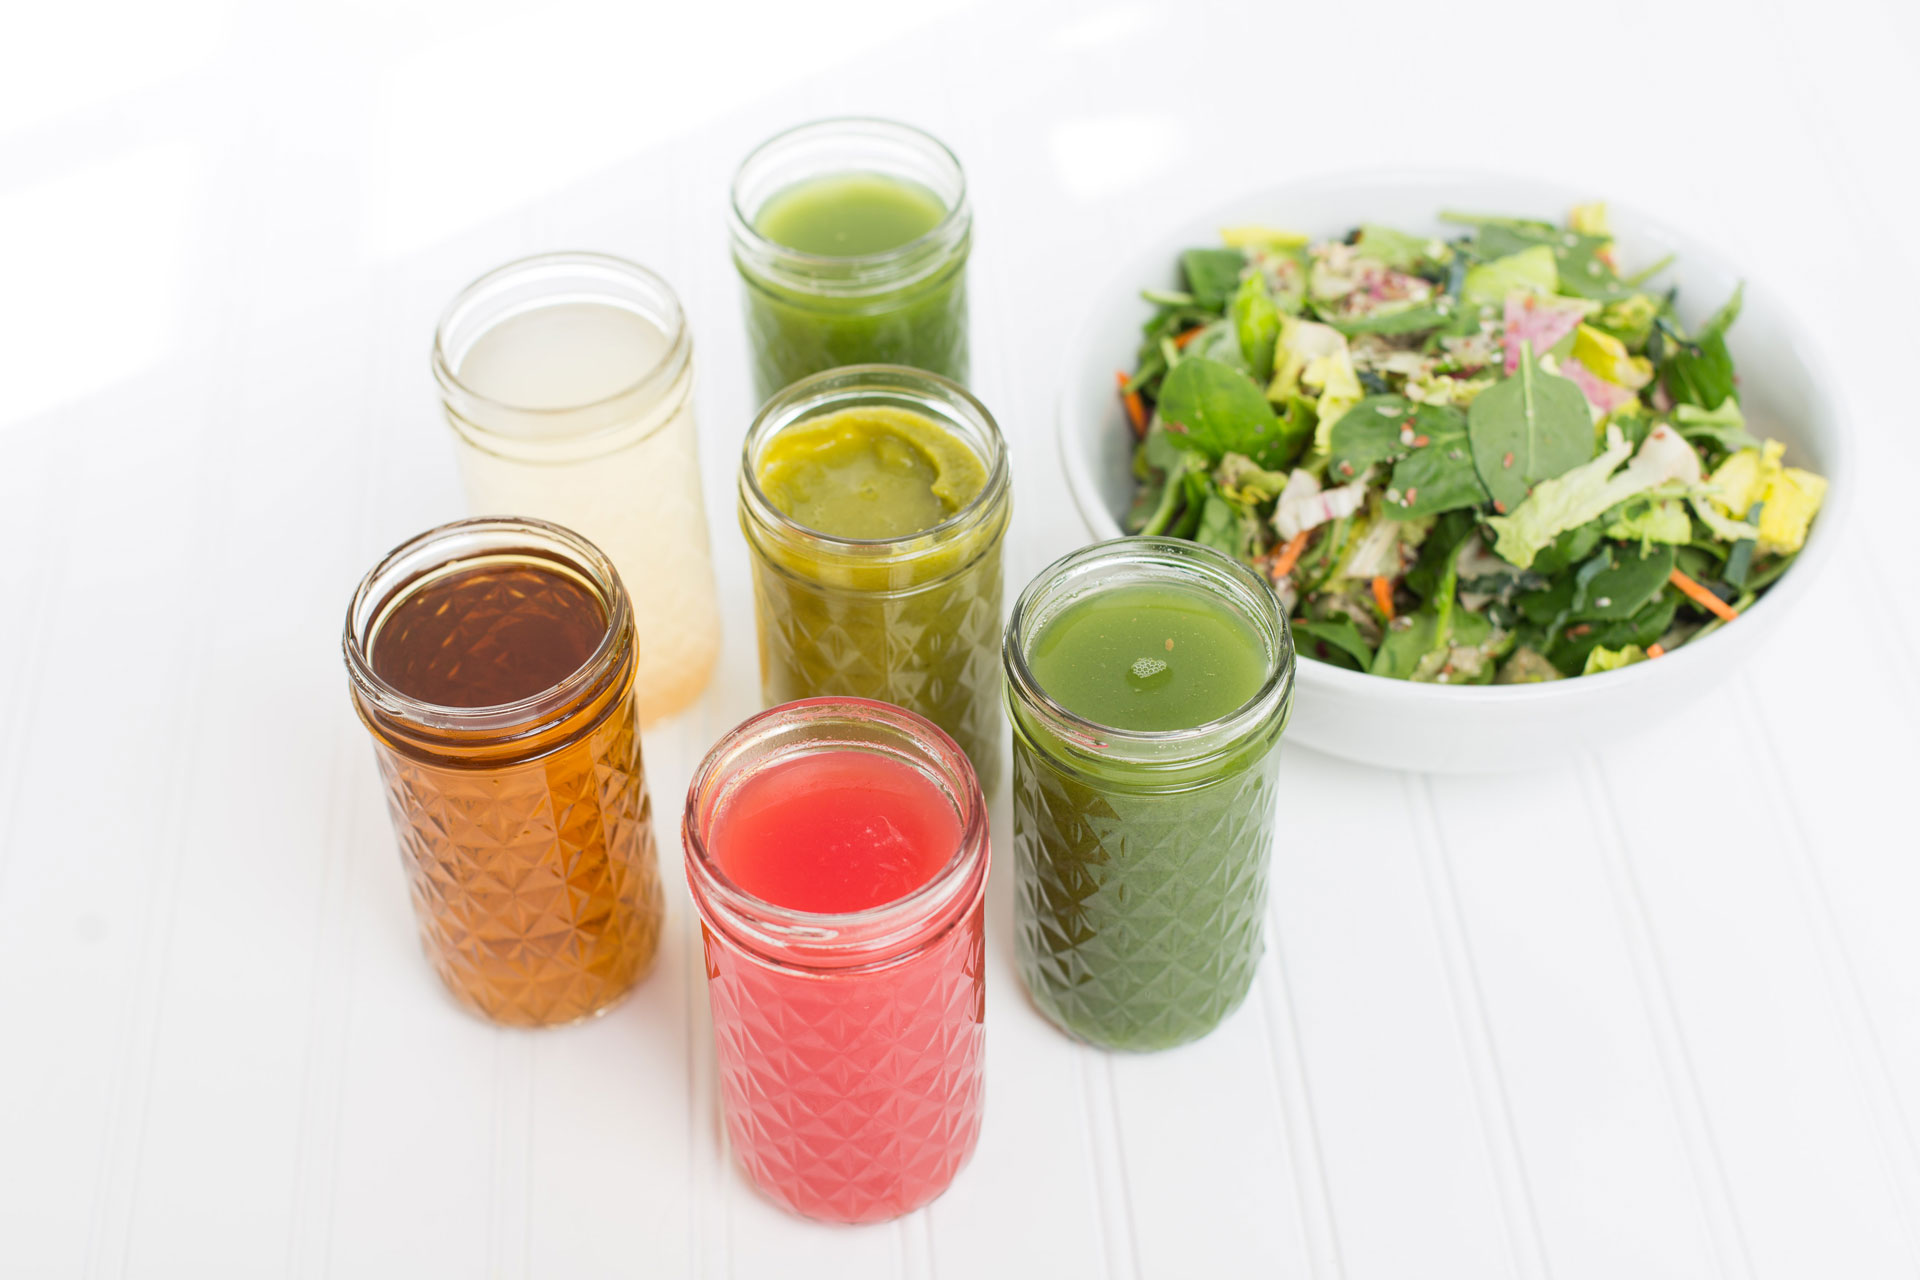 Weight loss and juice cleanses